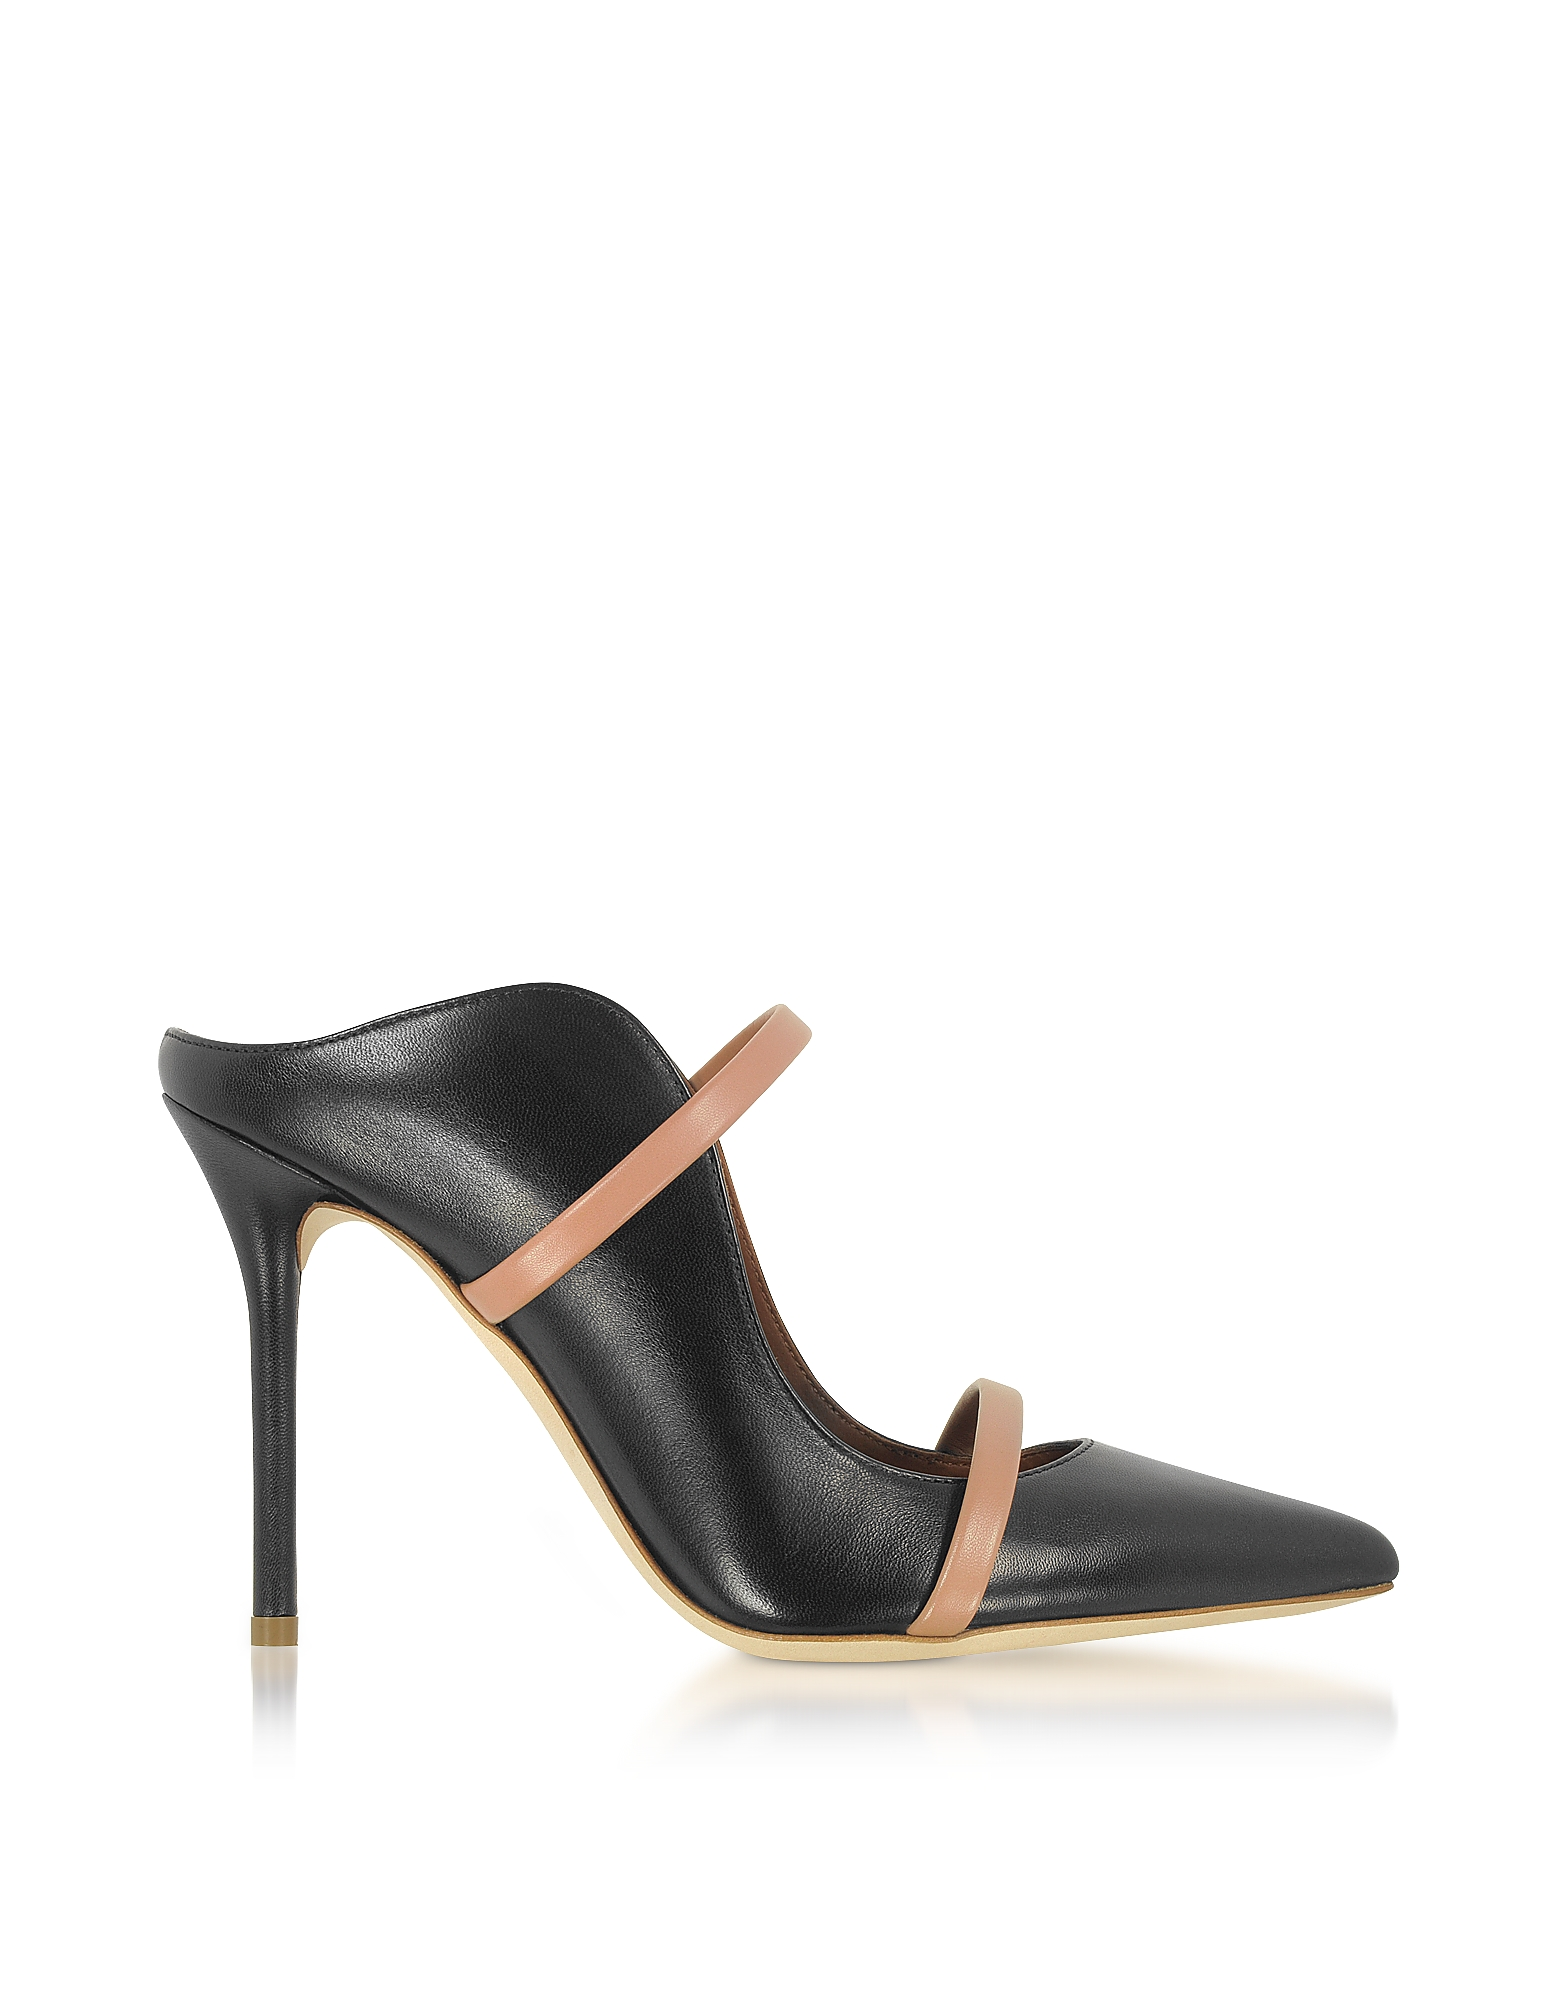 3486c89054 Malone Souliers Maureen Black And Nude Nappa Leather High Heel Mules